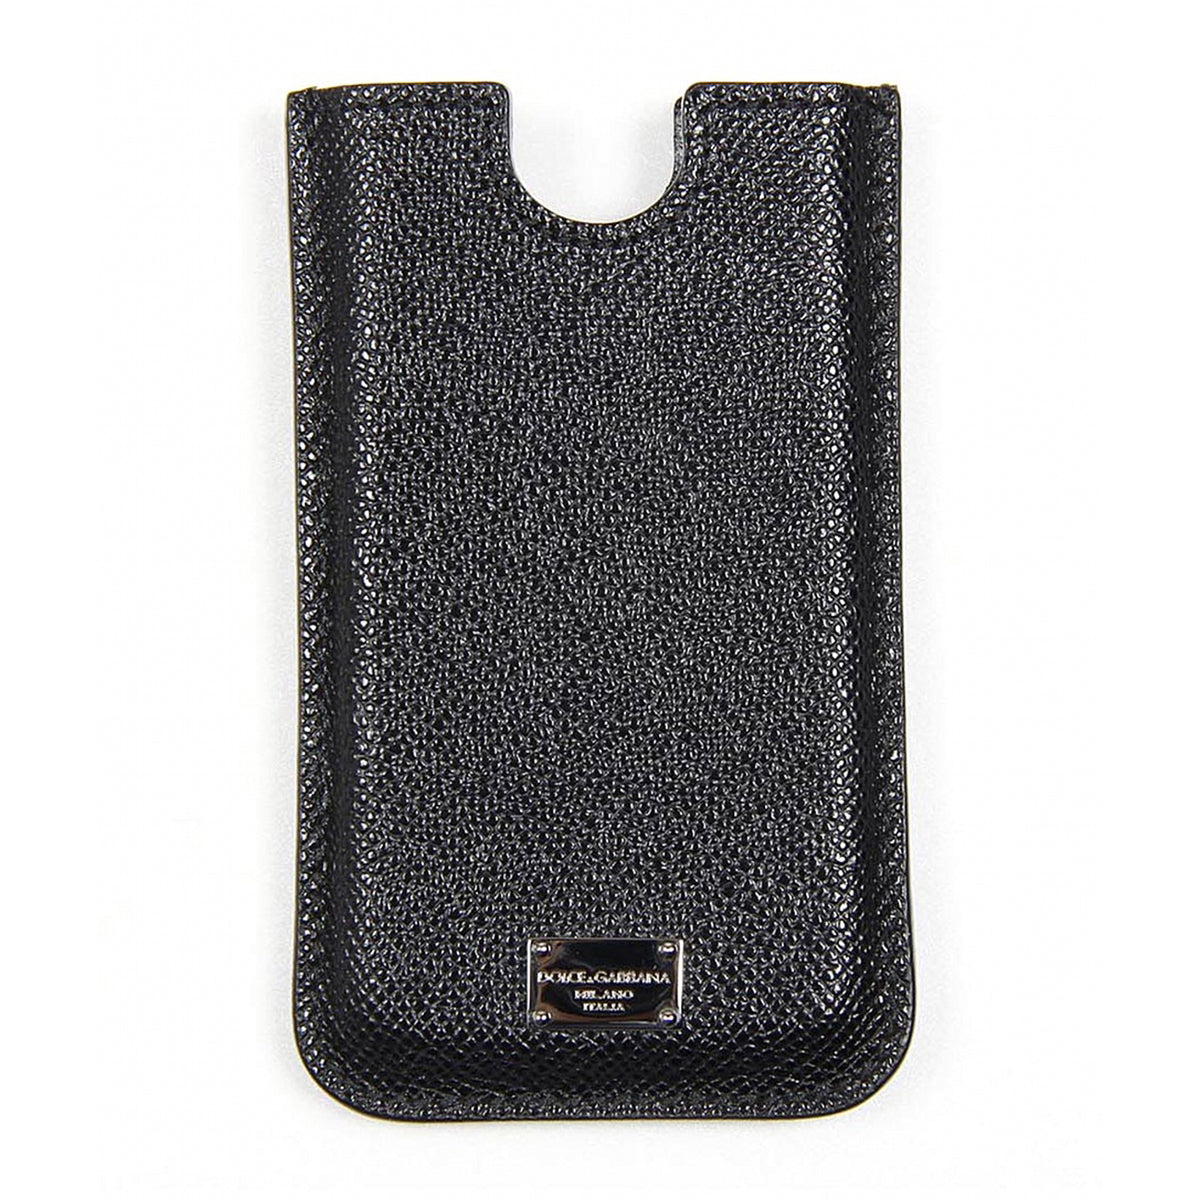 Dolce & Gabbana leather Cover Iphone 4/4S BP1641 A1080 80999